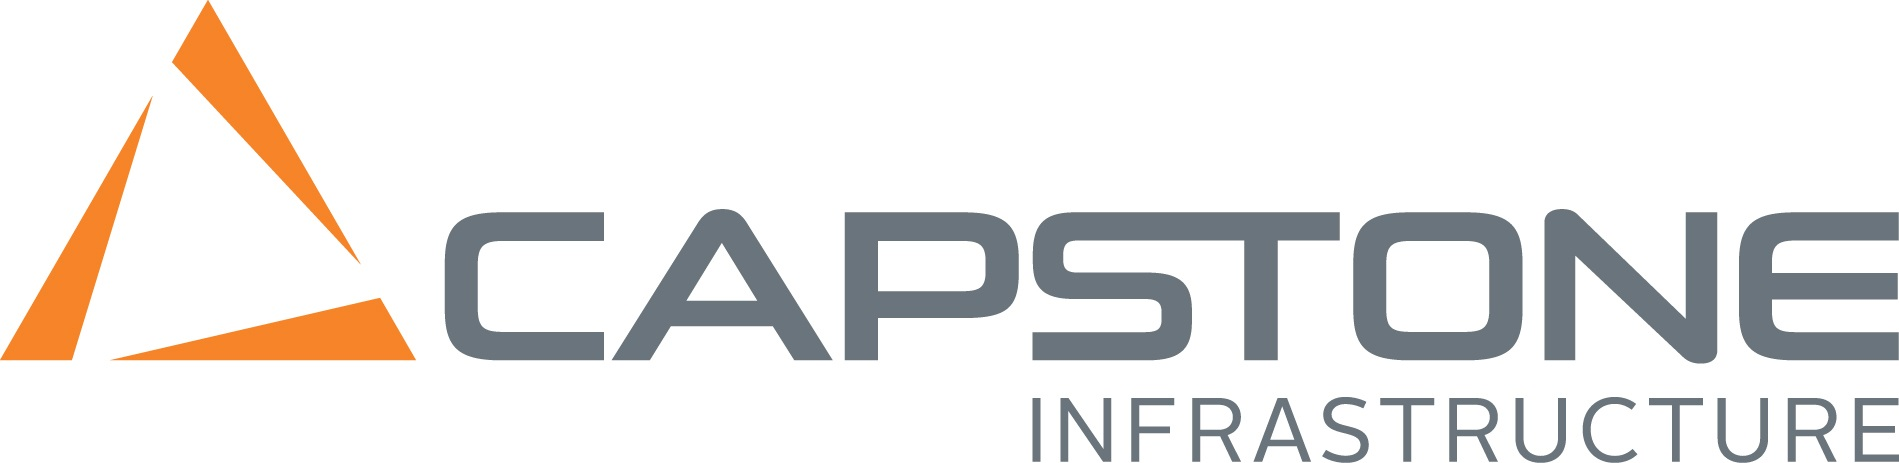 Capstone Infrastructure Corporation Announces the Acquisition of a Portfolio of Wind Projects in Ontario